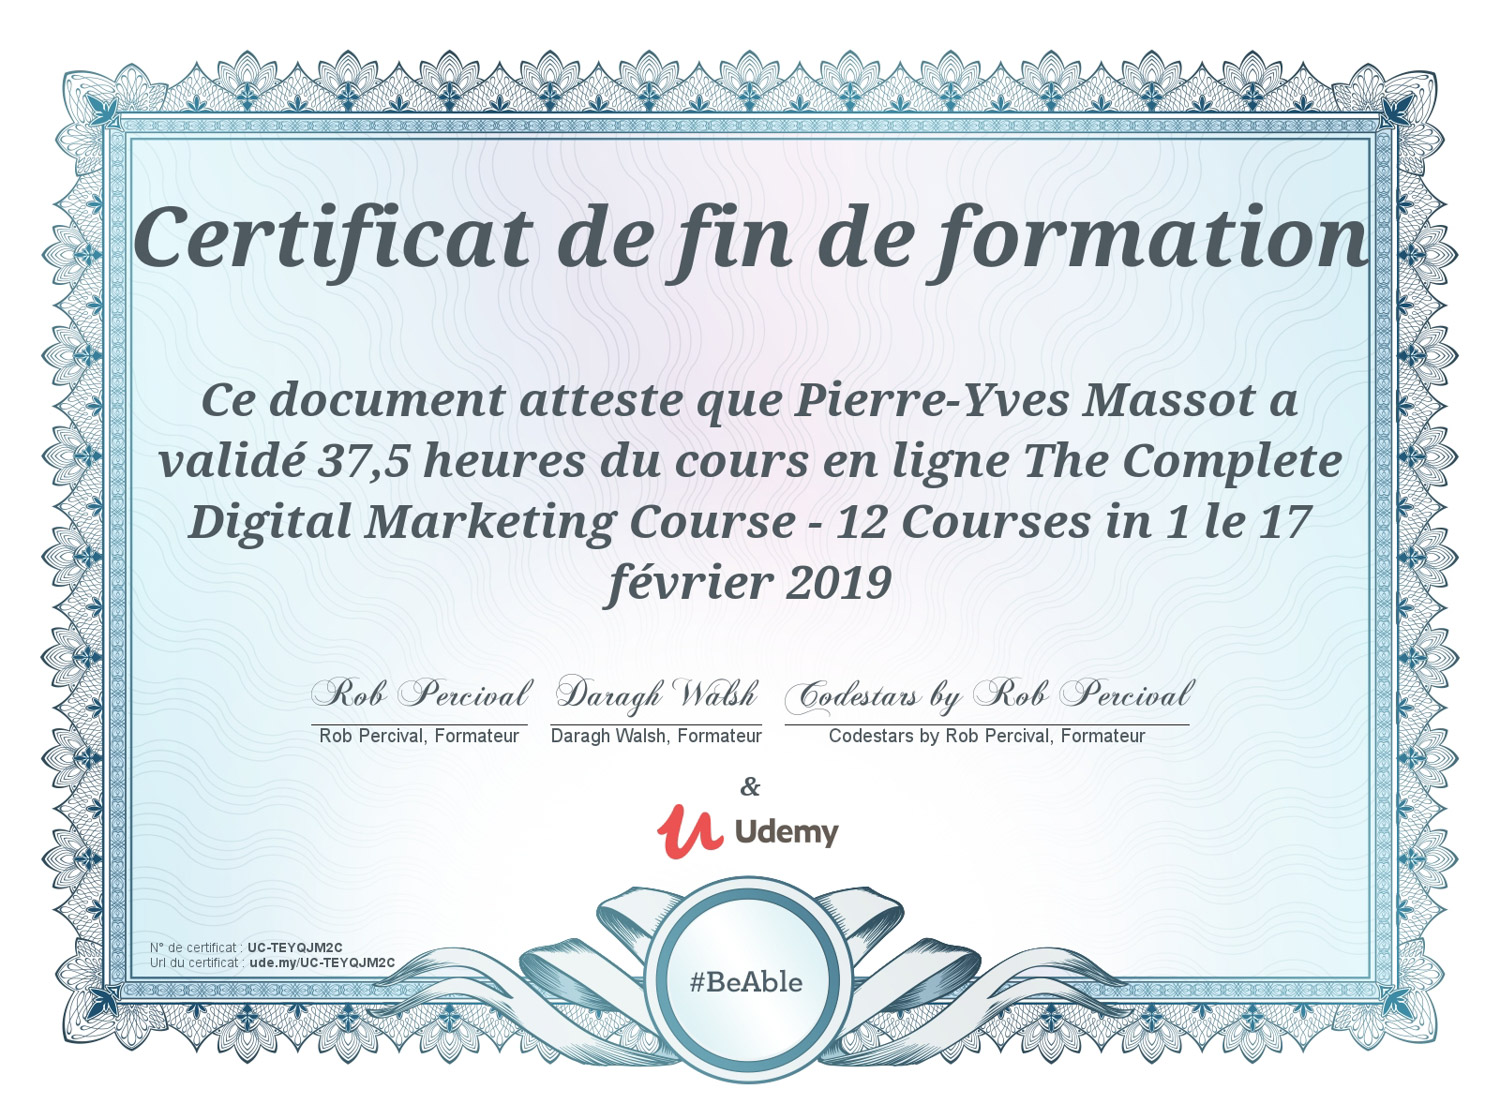 web-consulting-pierre-yves-massot-marketing-digital-fribourg-suisse-UC-TEYQJM2C.jpg